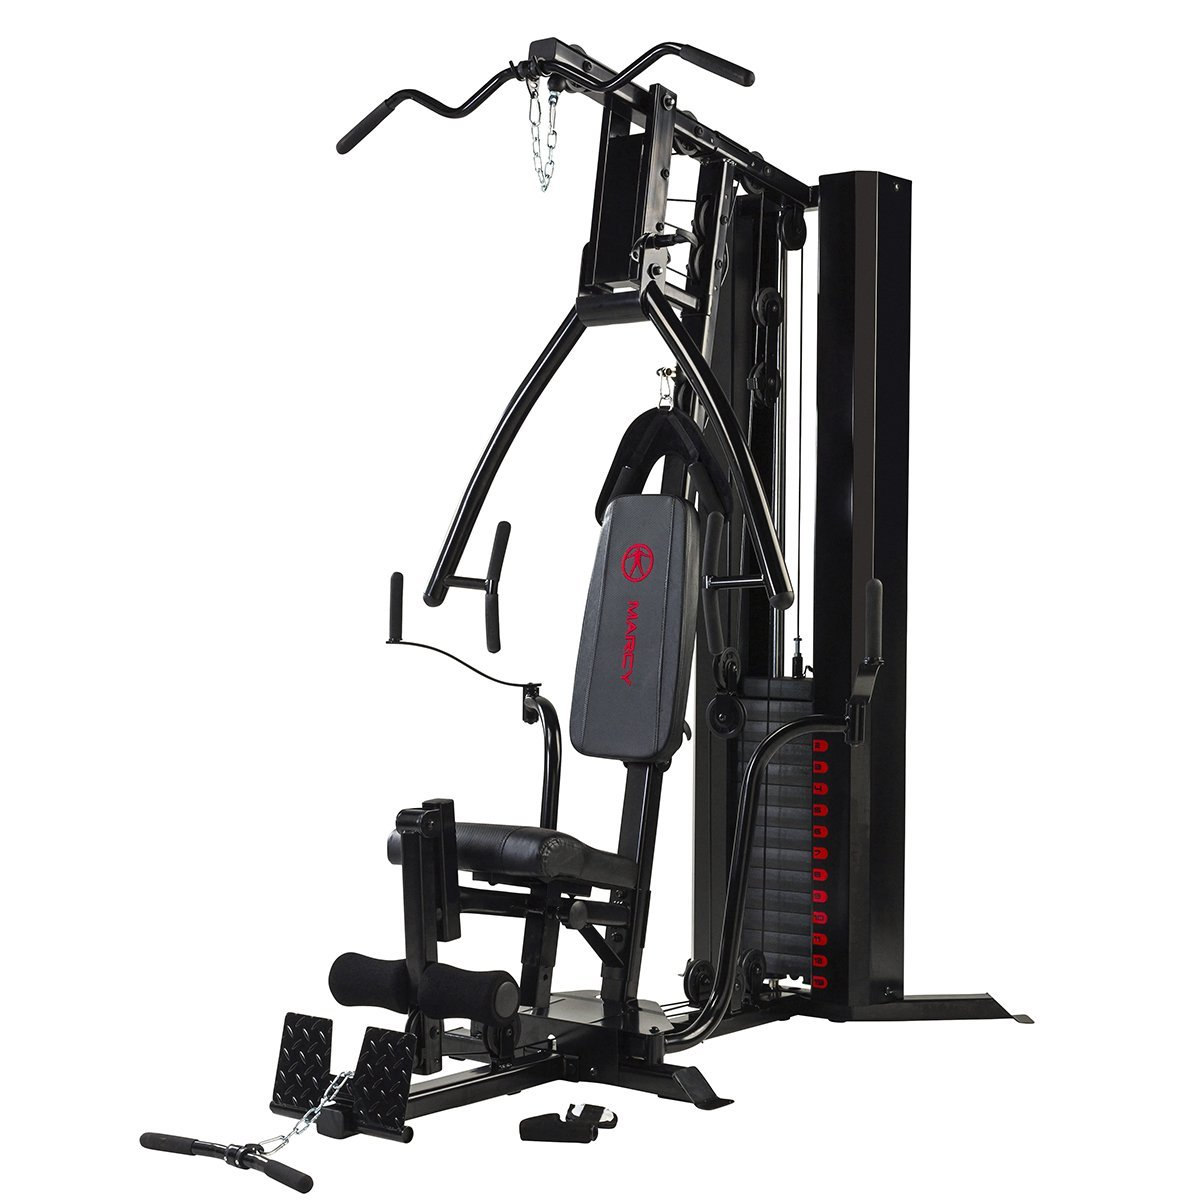 Marcy Eclipse Deluxe Home Gym - Black/Red Review